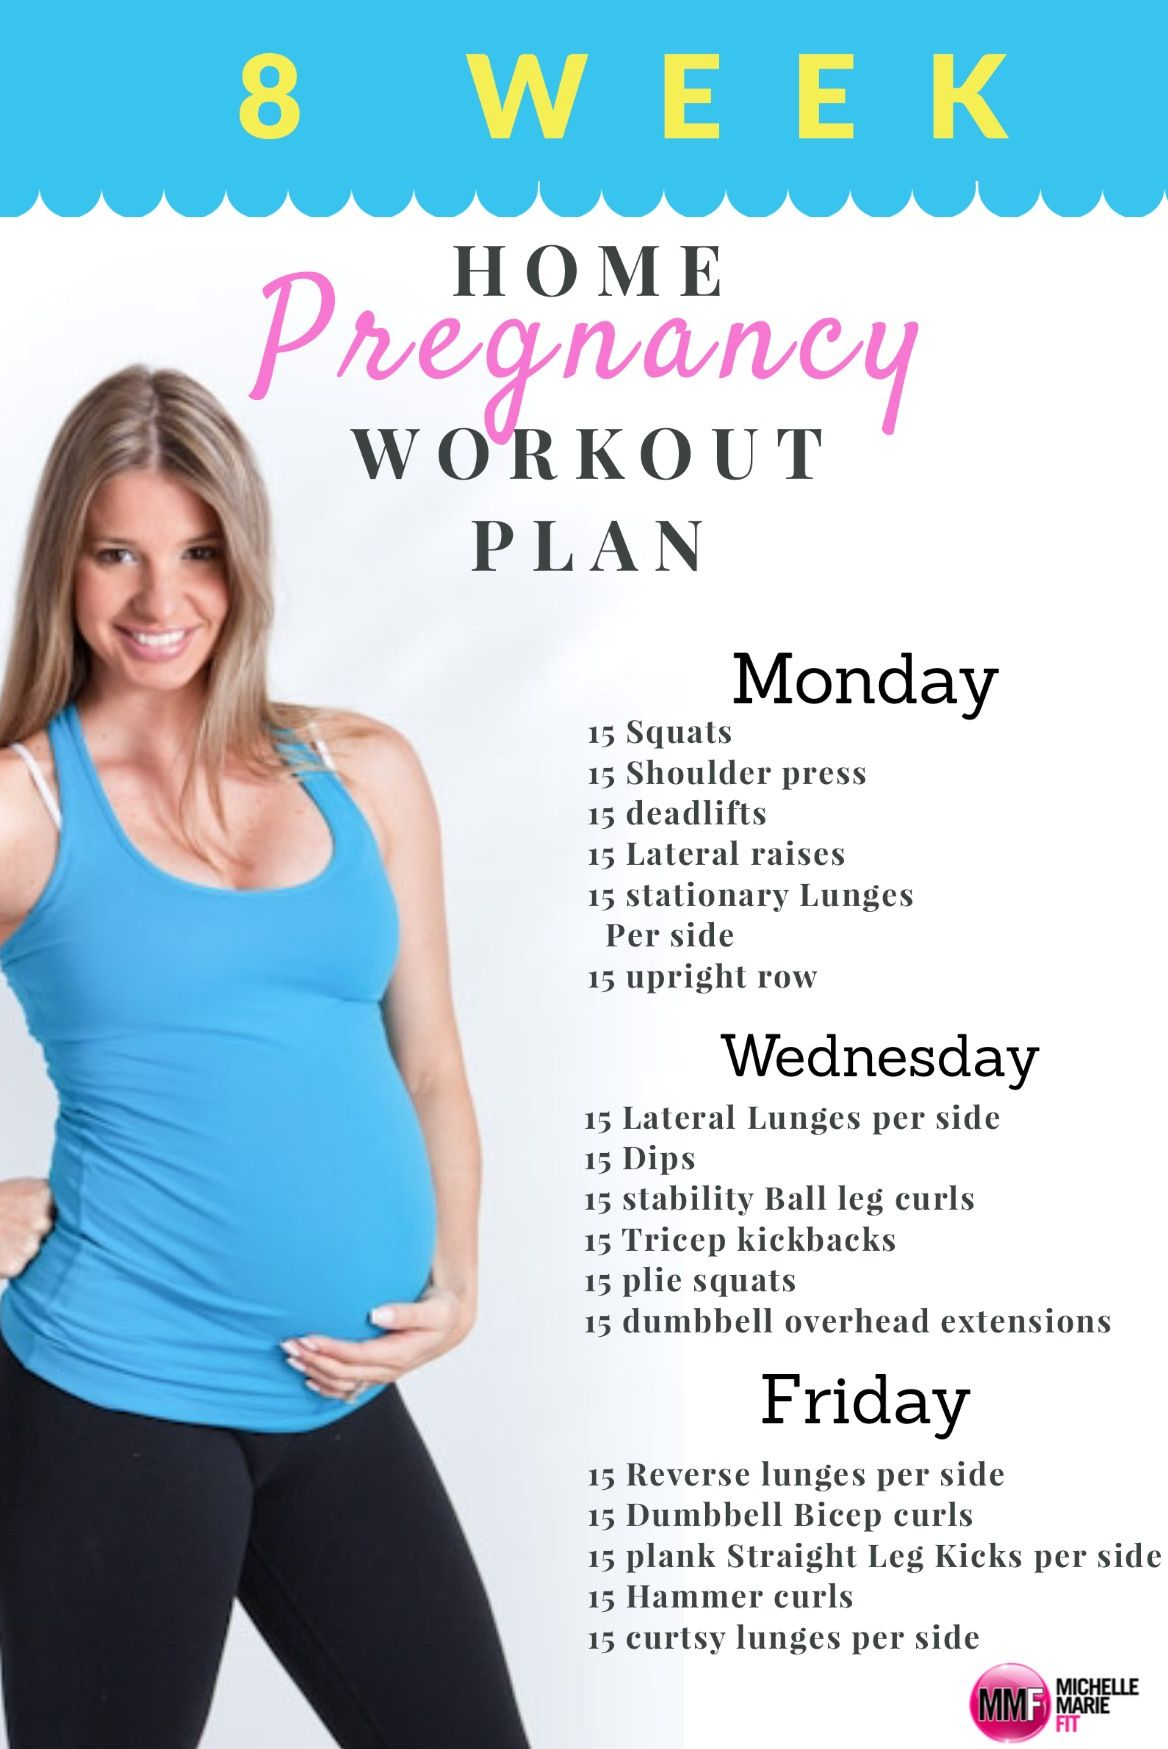 Monthly Home Pregnancy Workout